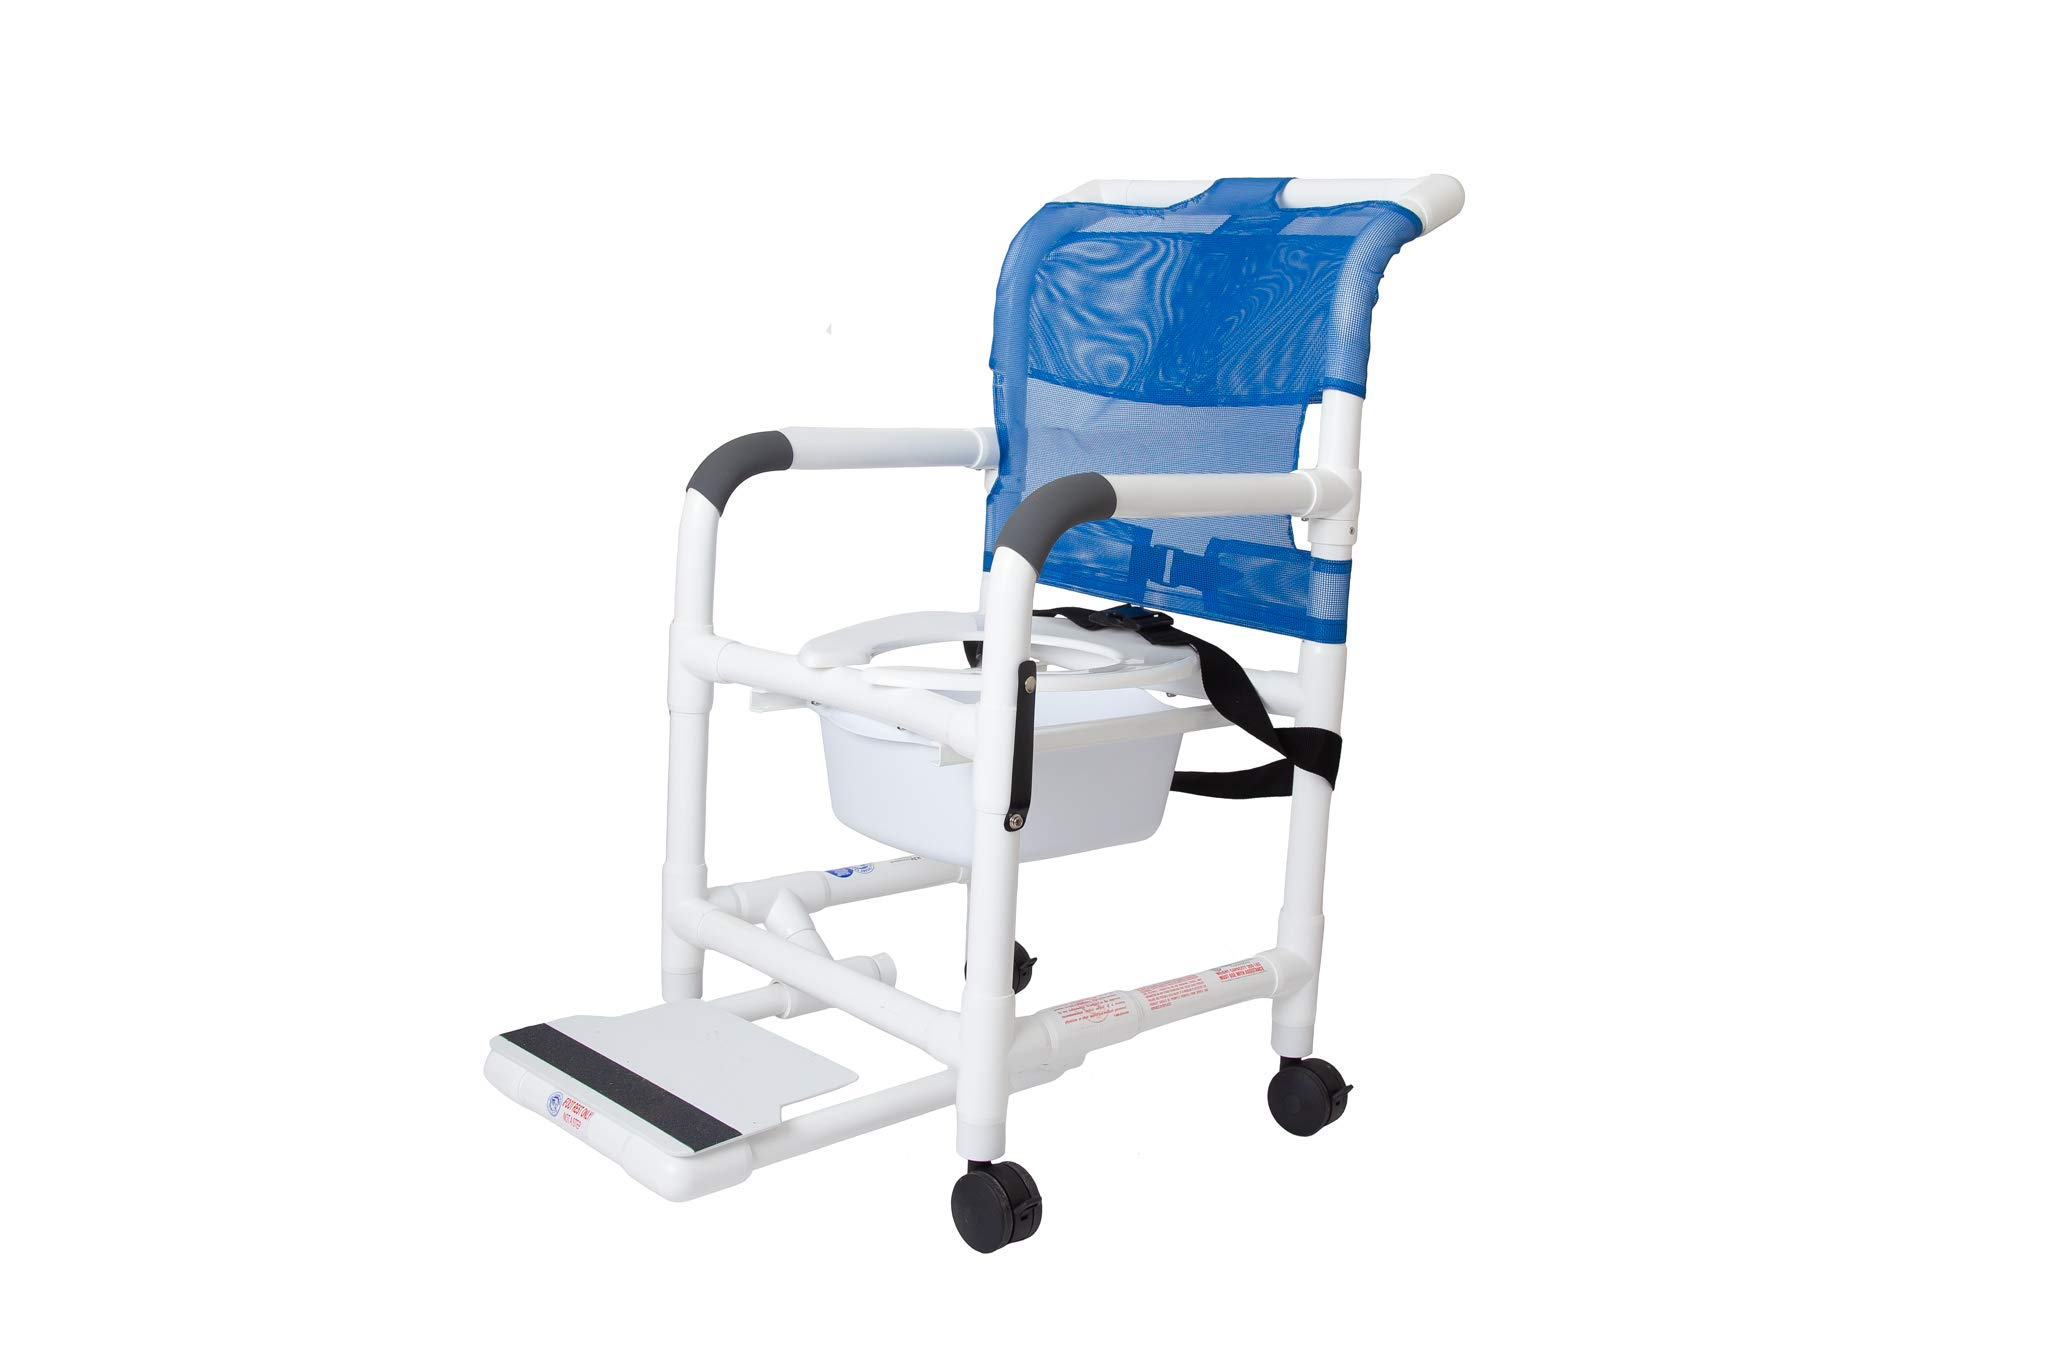 Rolling Antimicrobial Footrest Capacity Standard